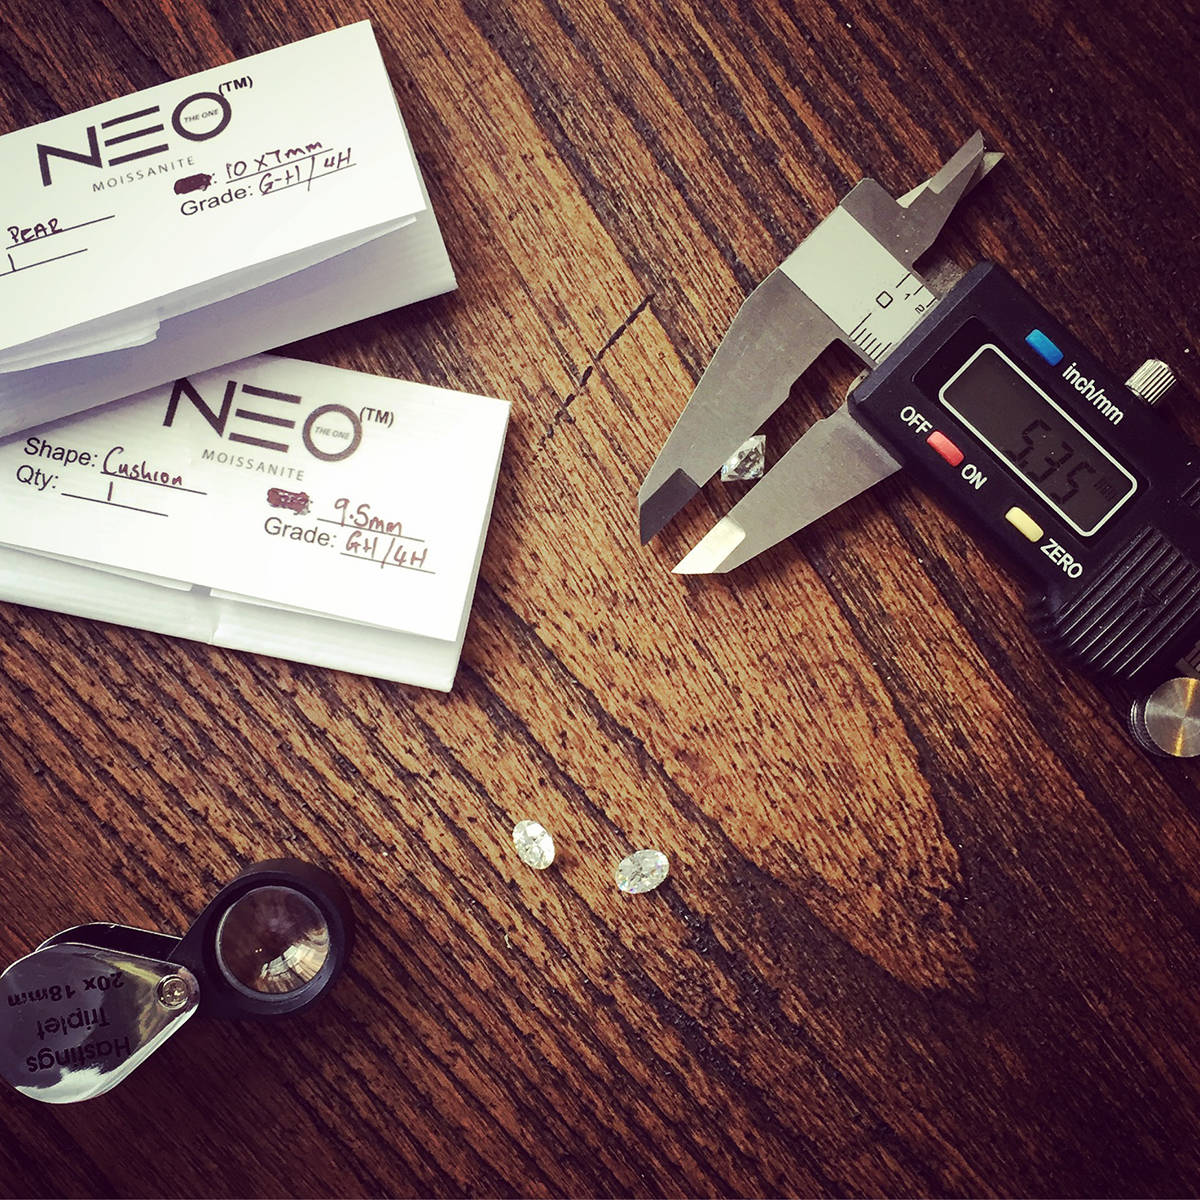 NEO Digital Calipers